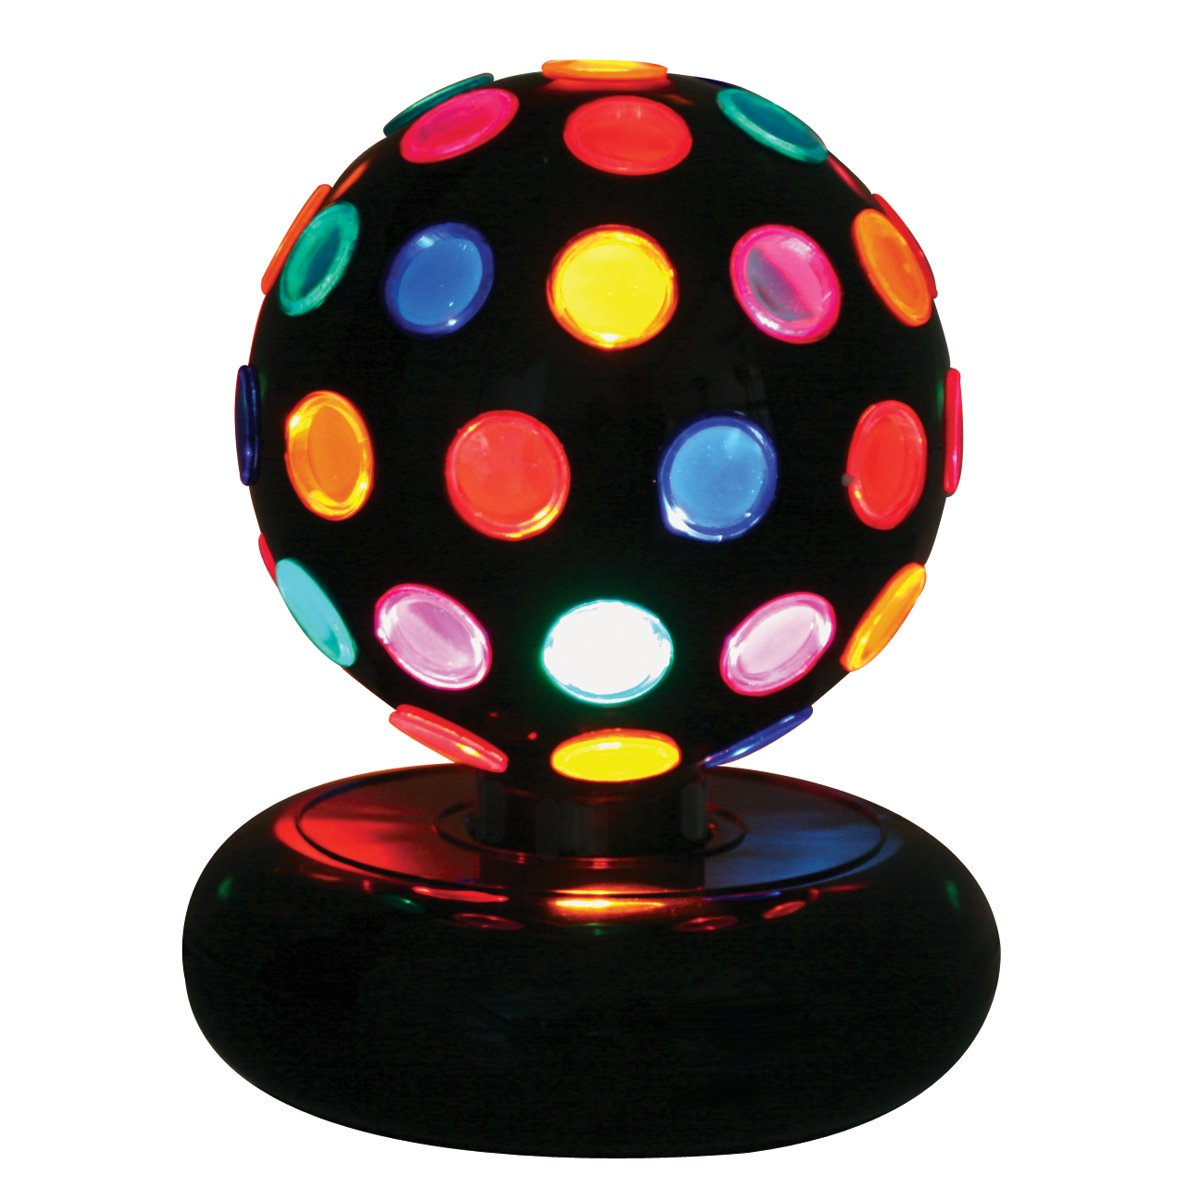 lumisource ls disco 6m color rotating ball disco lamp amazon com